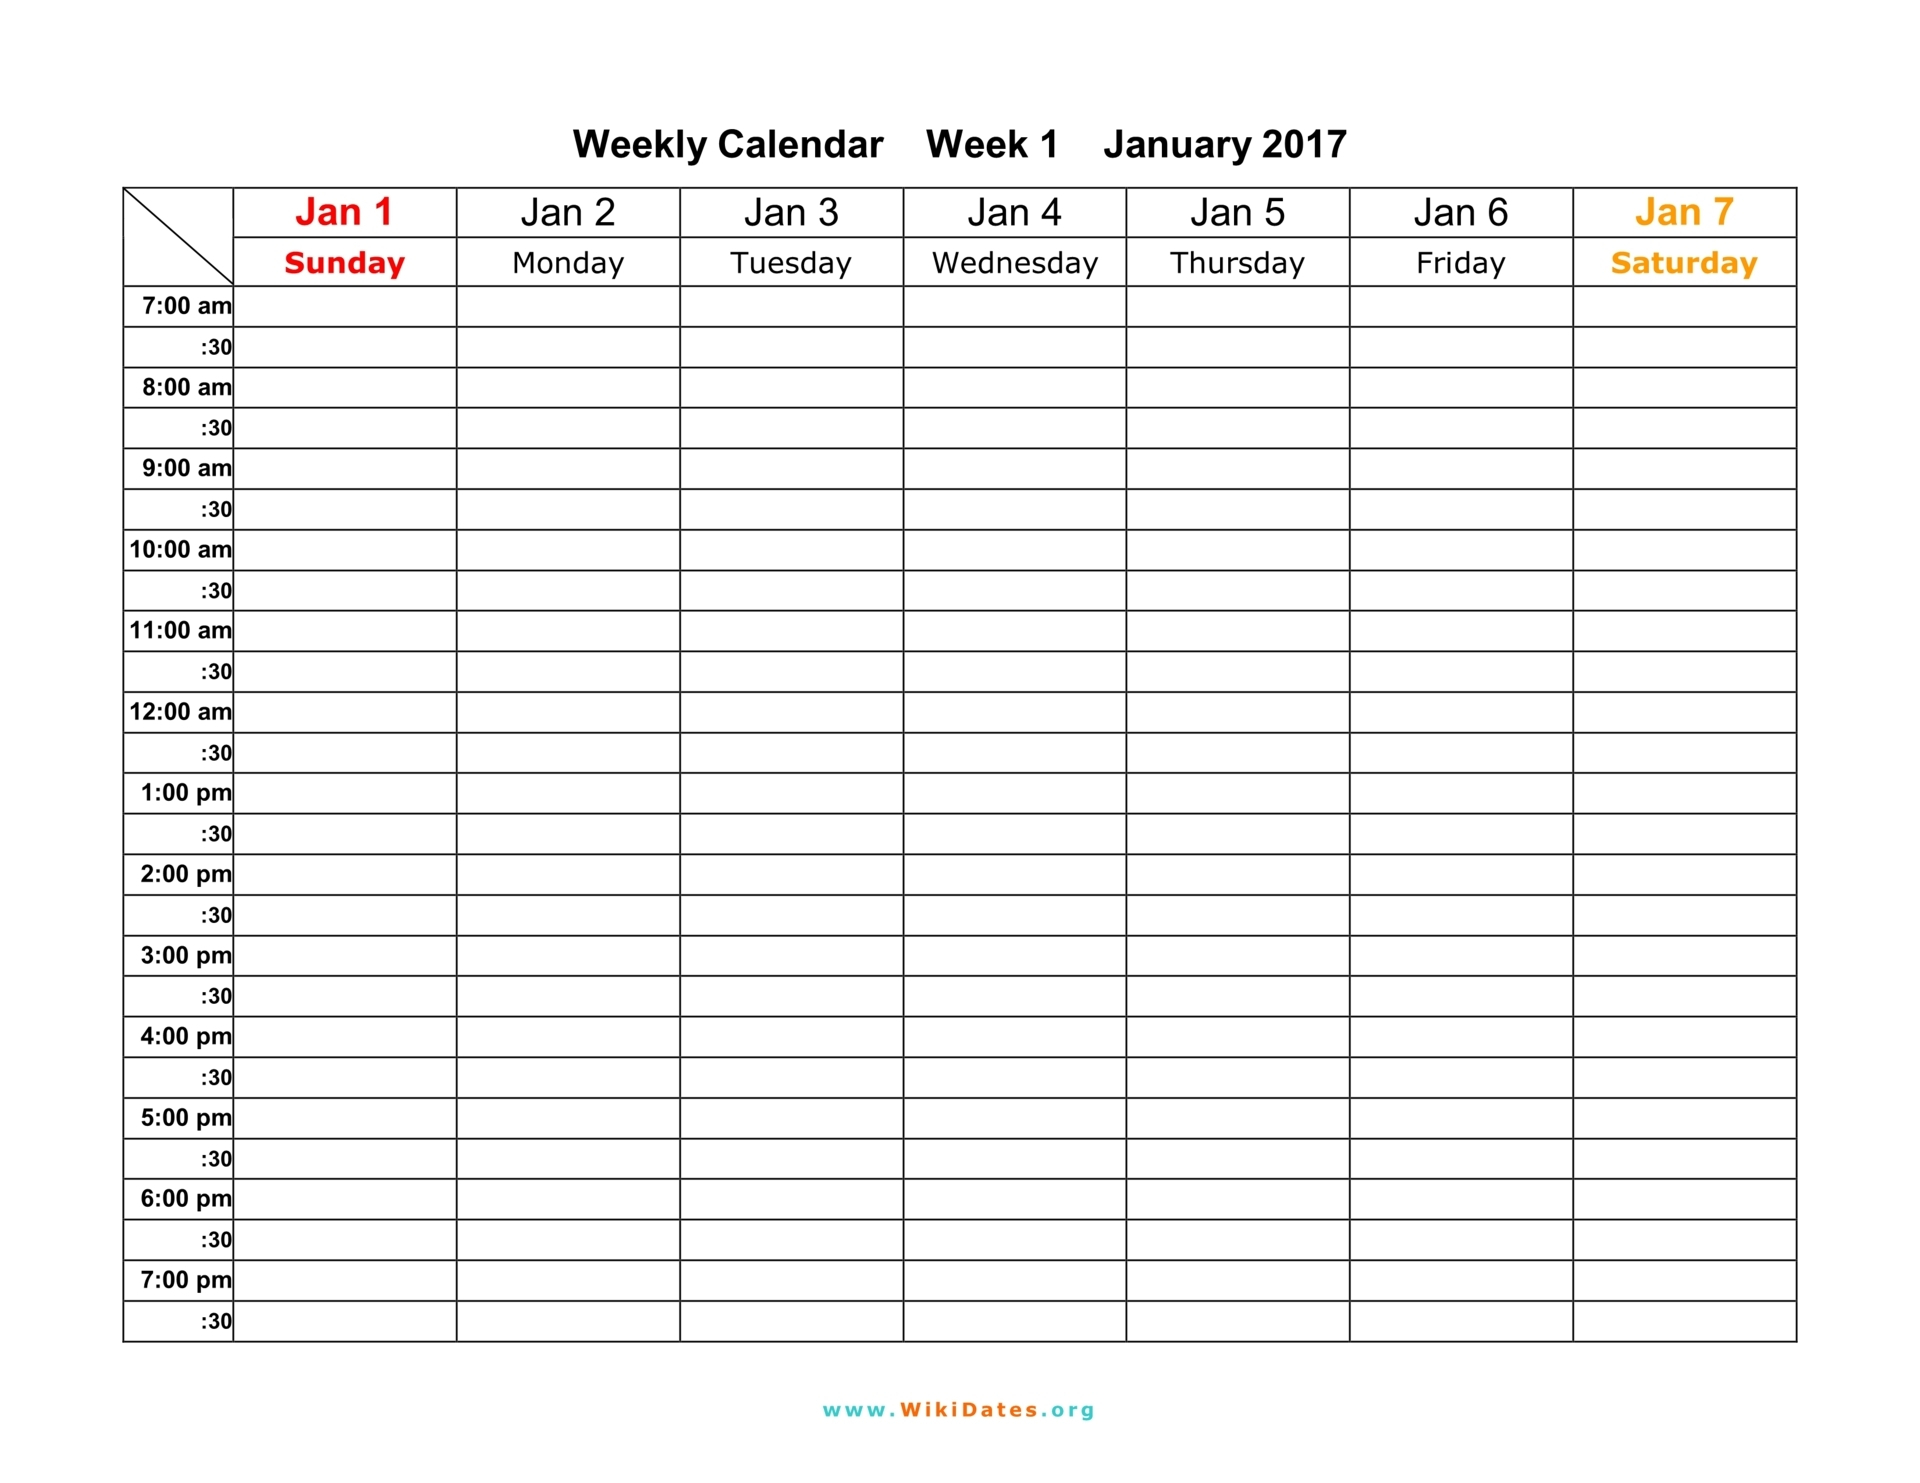 Weekly Calendar - Download Weekly Calendar 2017 And 2018